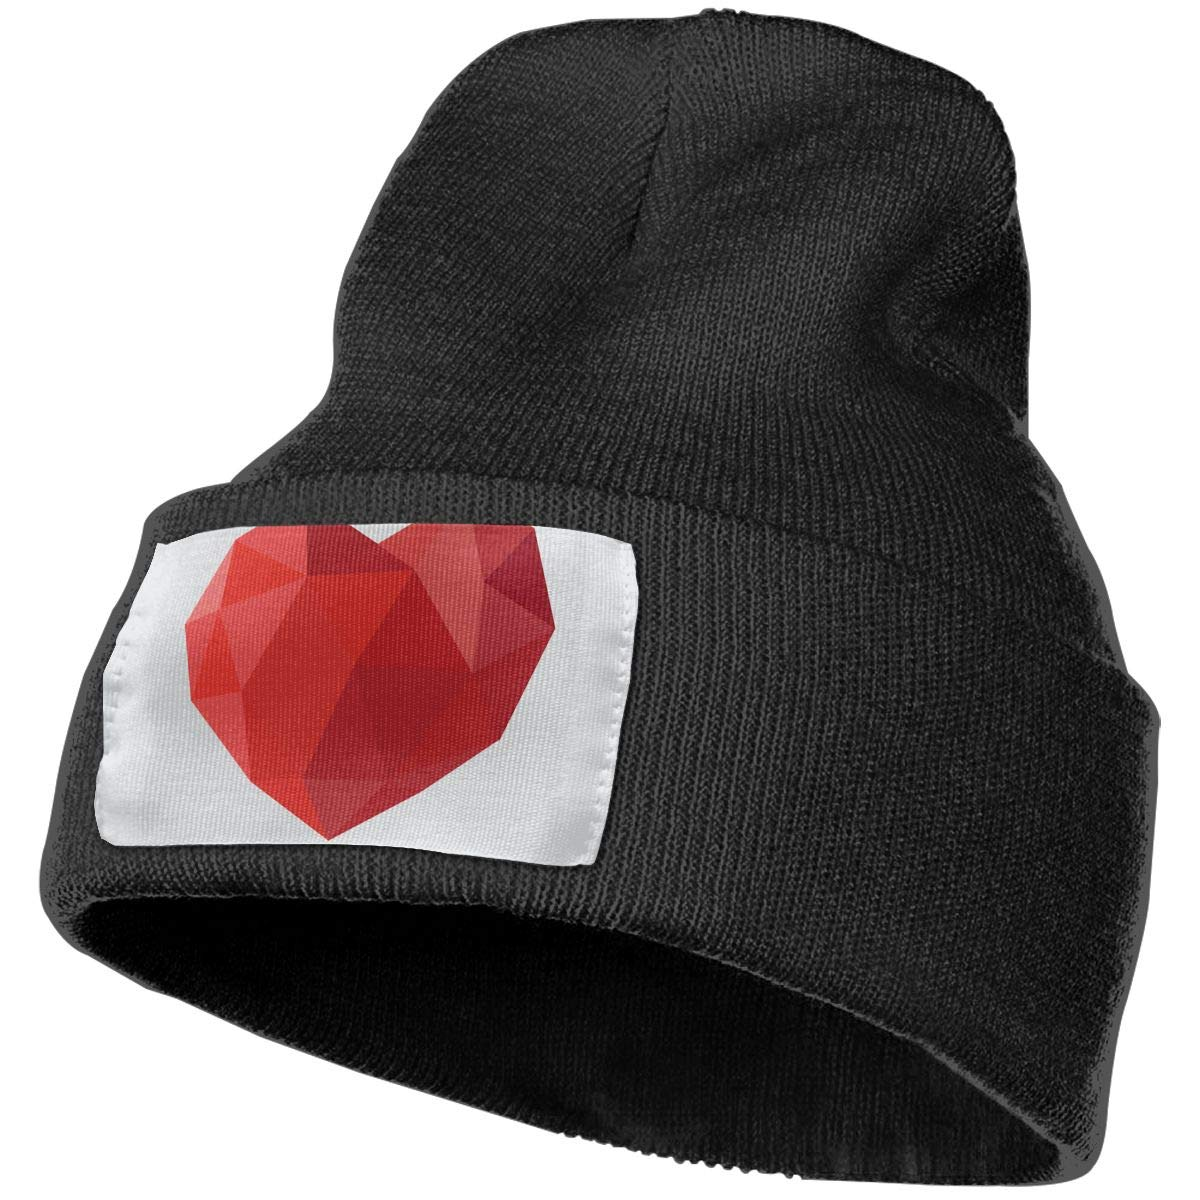 Red Heart Abstract Isolated On A Grey Backgrounds Unisex Fashion Knitted Hat Luxury Hip-Hop Cap